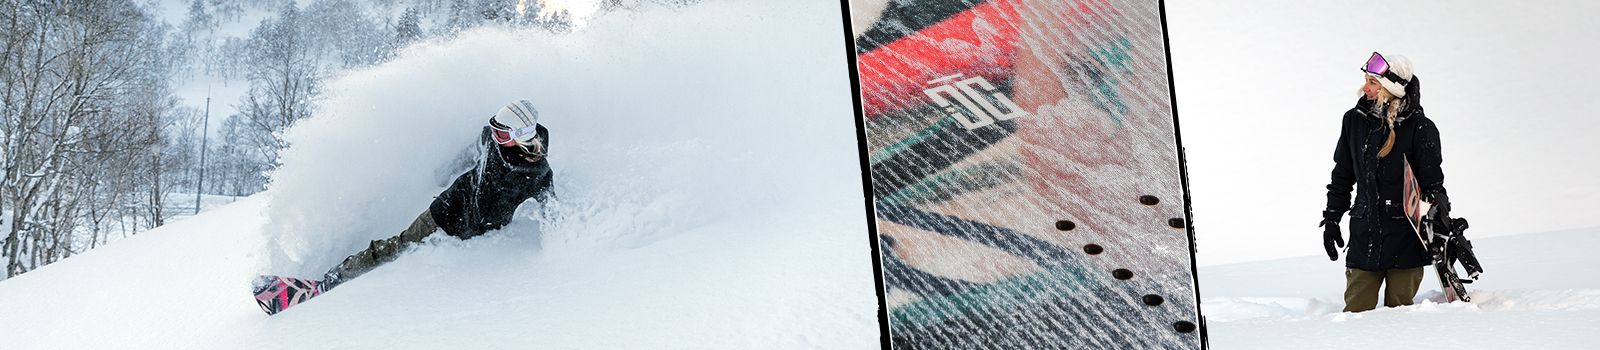 Womens Ski Clothing, Trends & Fashion by DC Shoes